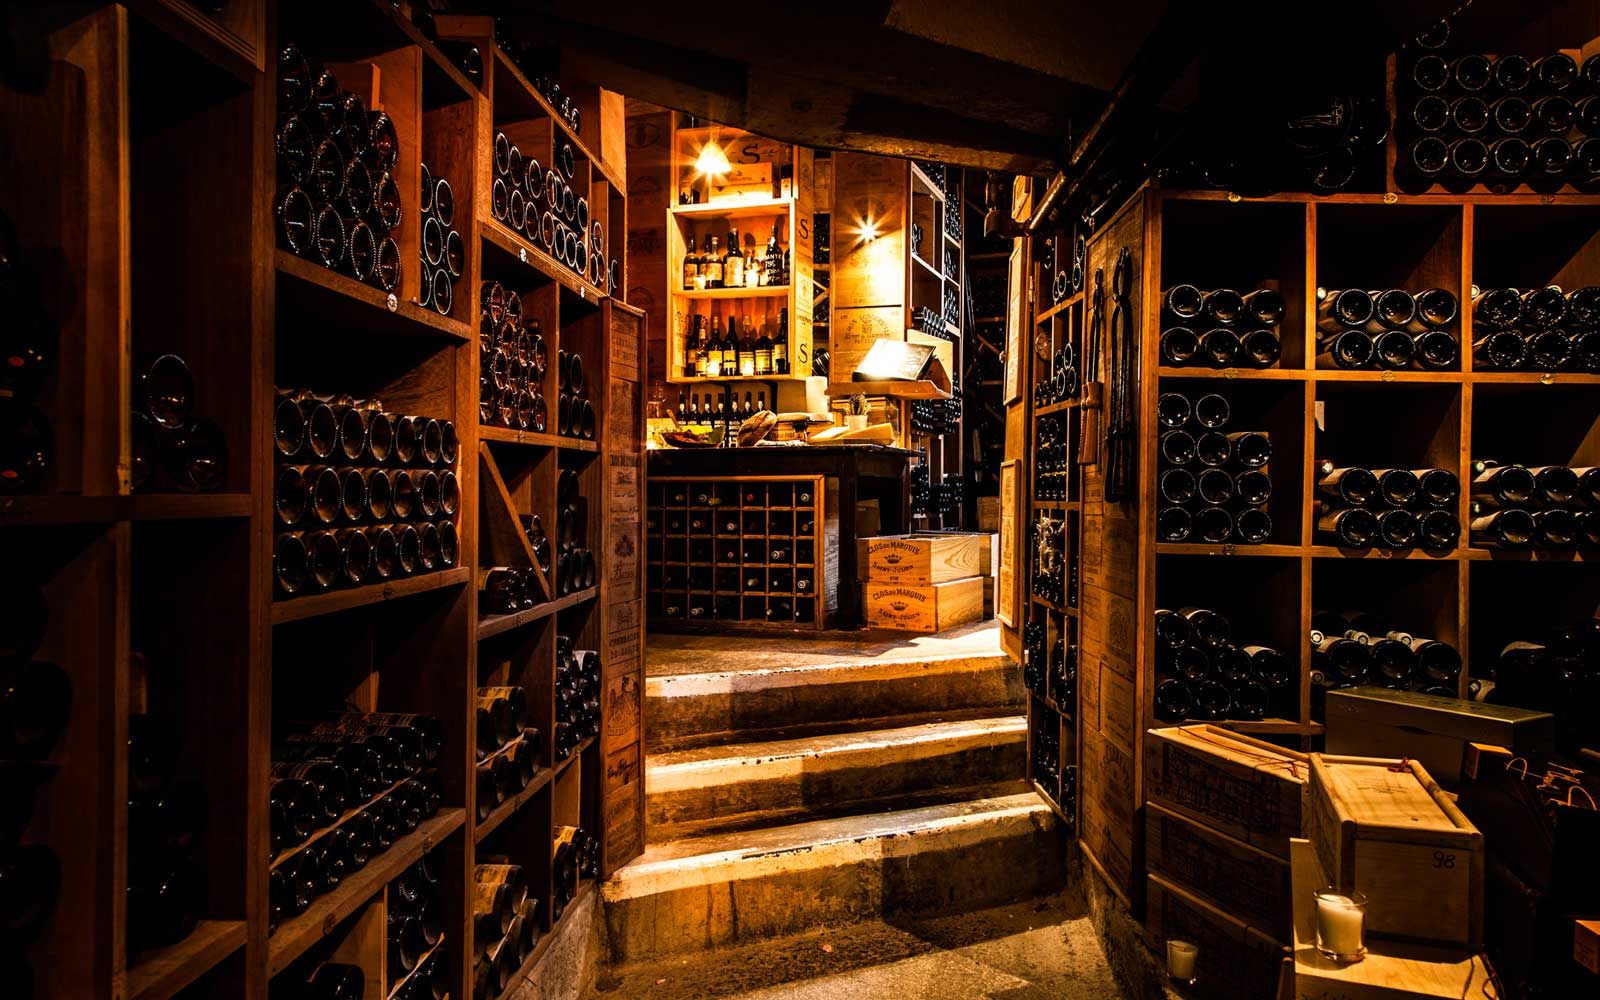 The wine cellar at the George V in Paris, France